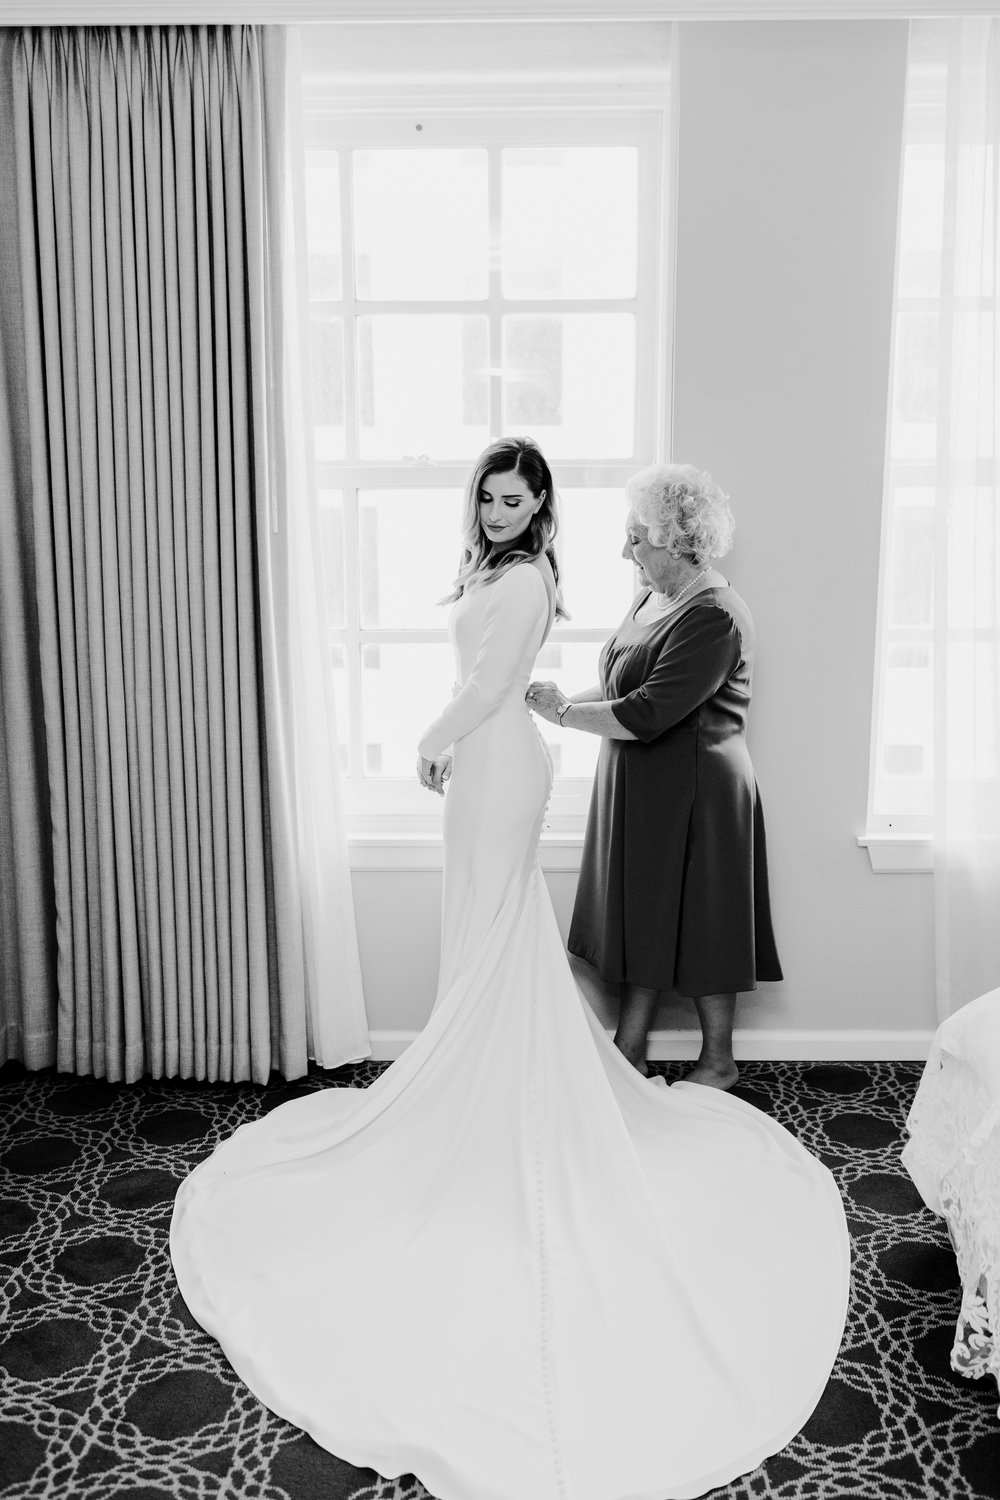 New Orleans Wedding Photographer Bride Getting Ready 8.jpg